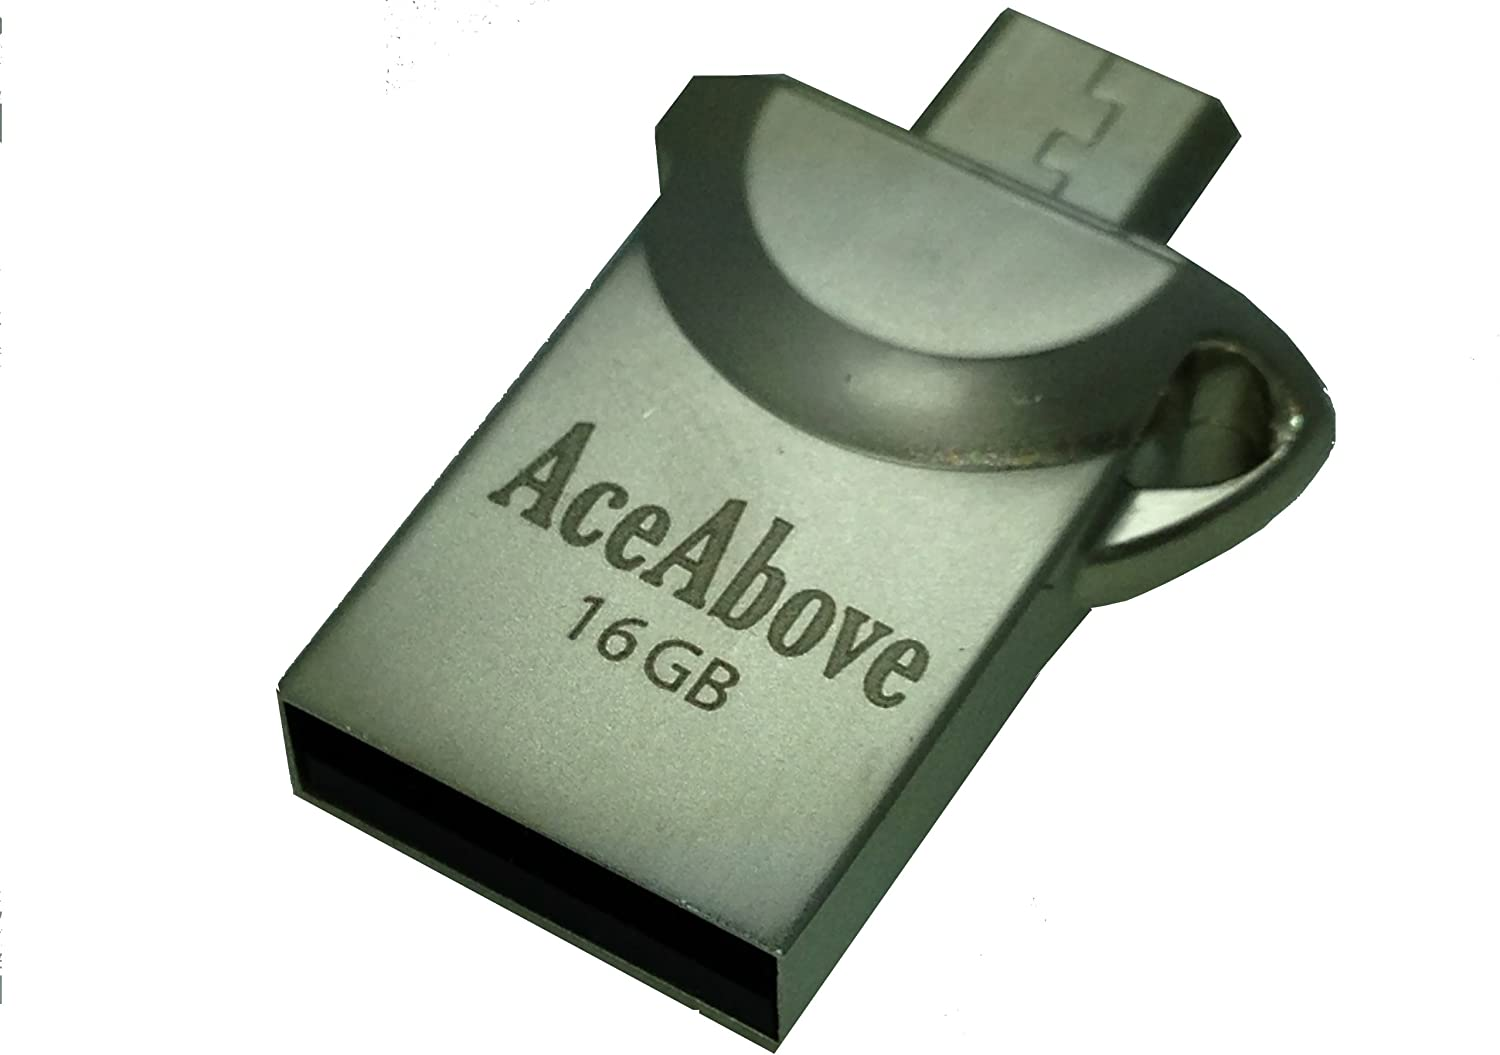 AceAbove Mobile X10 16GB USB 2.0 Android OTG 2021 new Colorado Springs Mall for Drive Flash Sma